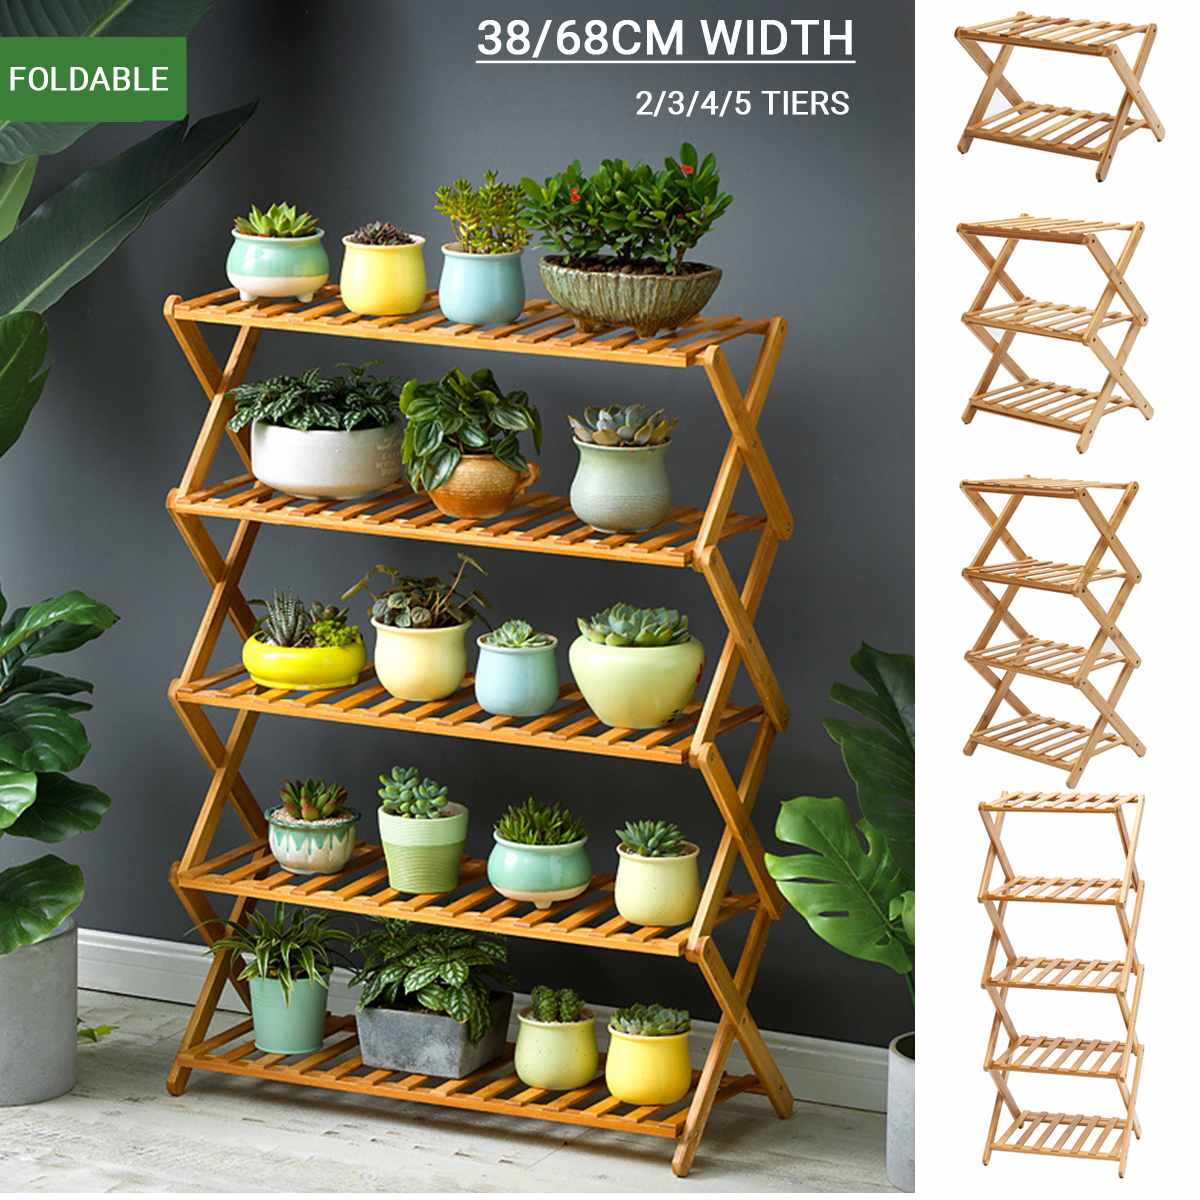 2/3/4/5 Tiers Foldable Natural Plant Stand Flower Pot Decor Shelf Garden Balcony Planter Flower Pot Tray Display Rack